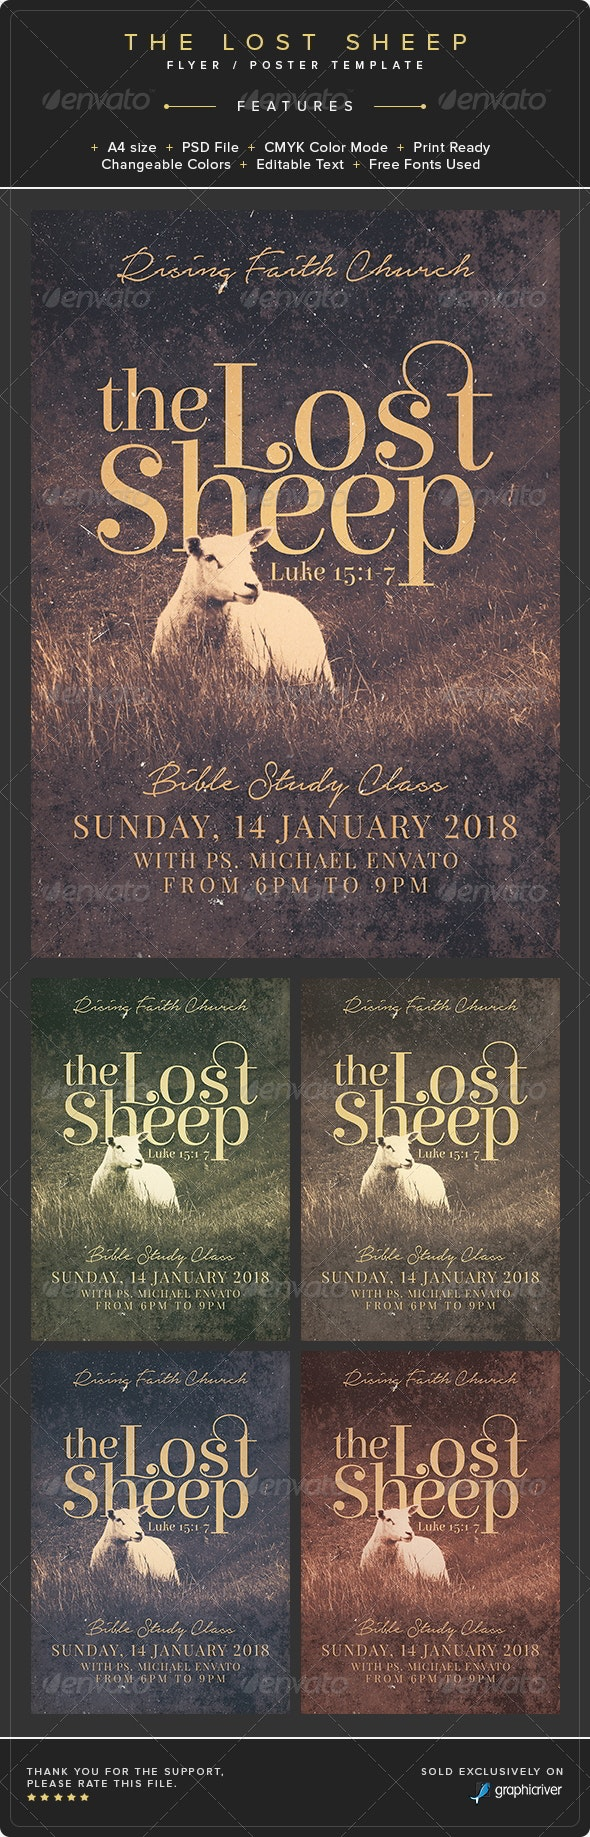 The Lost Sheep Flyer/Poster Template - Church Flyers